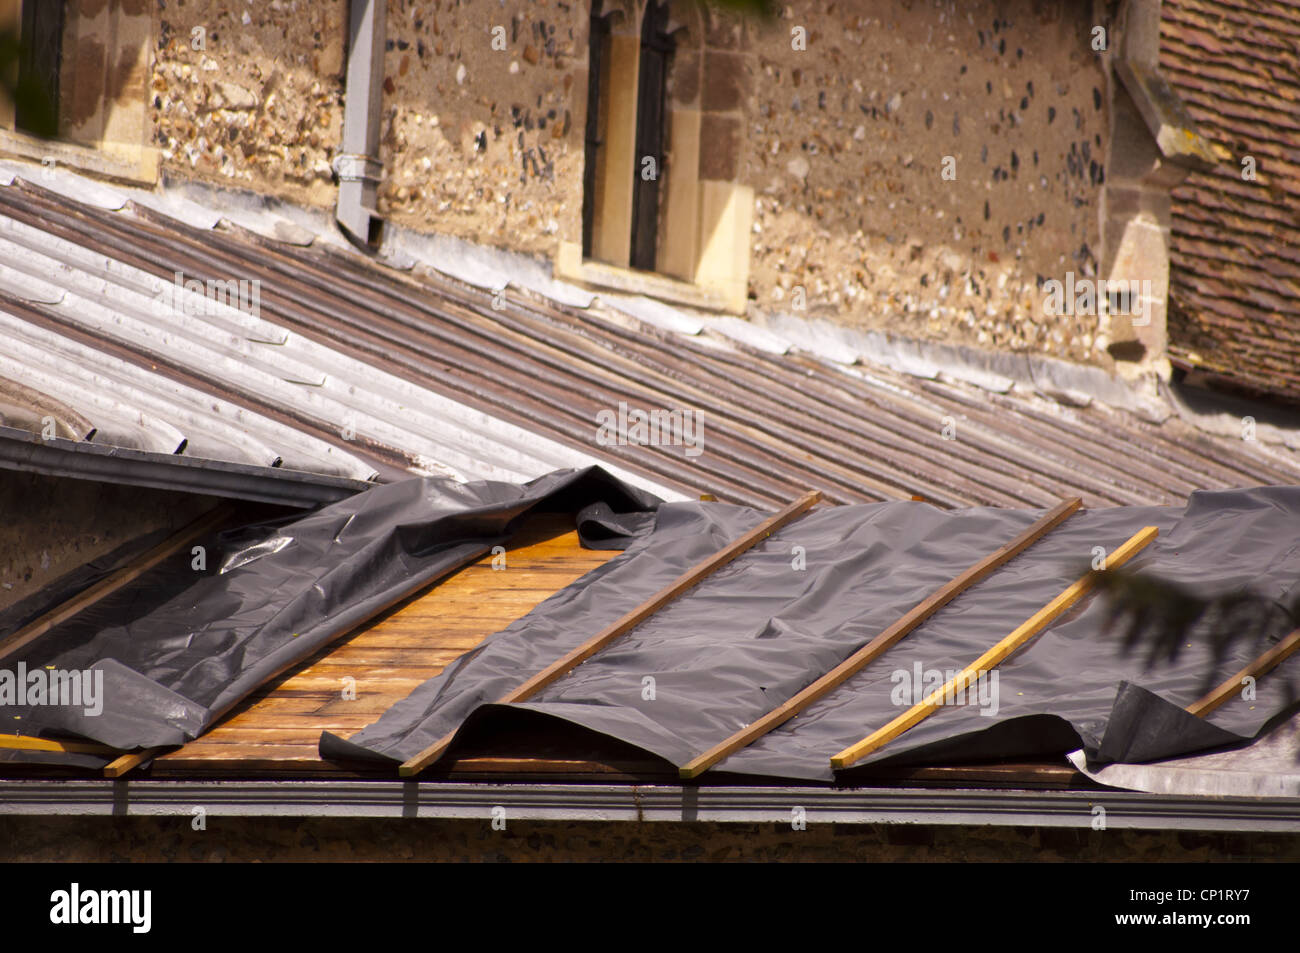 Plastic sheet covering church roof after thieves stole lead - Stock Image